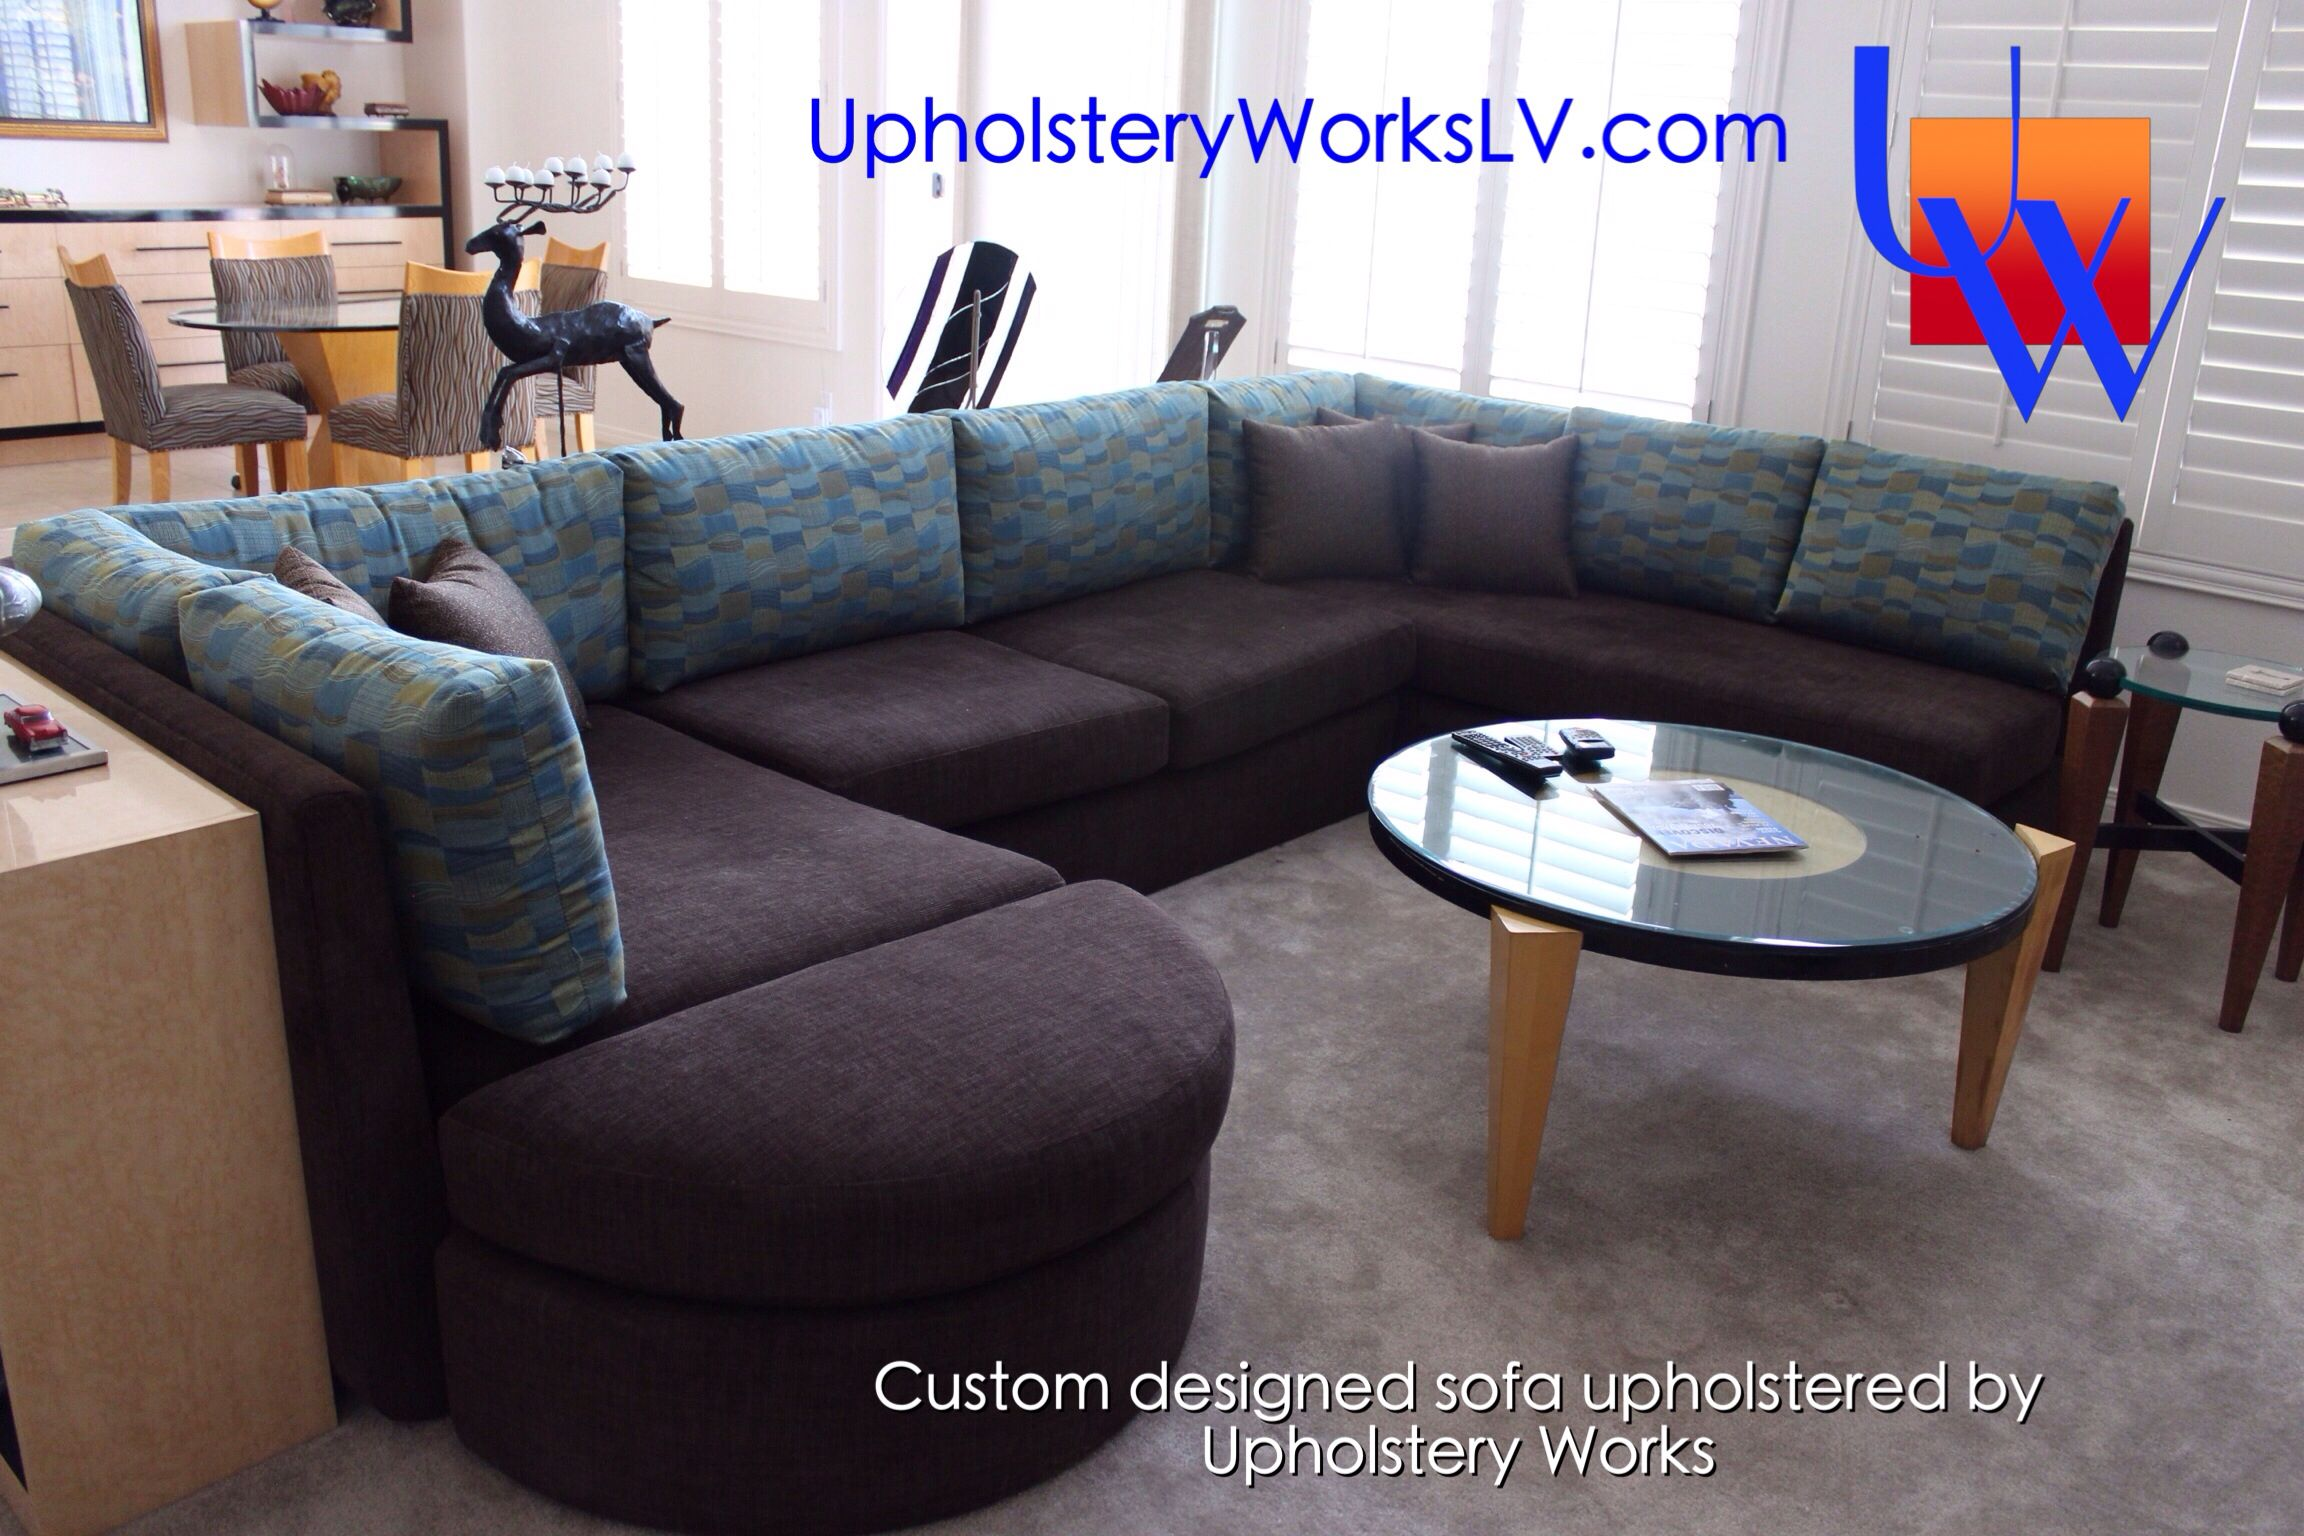 Sectional Sofa Couch Dining Room Chairs Furniture Upholstery Custom Las Vegas Design Home Decor Homemade